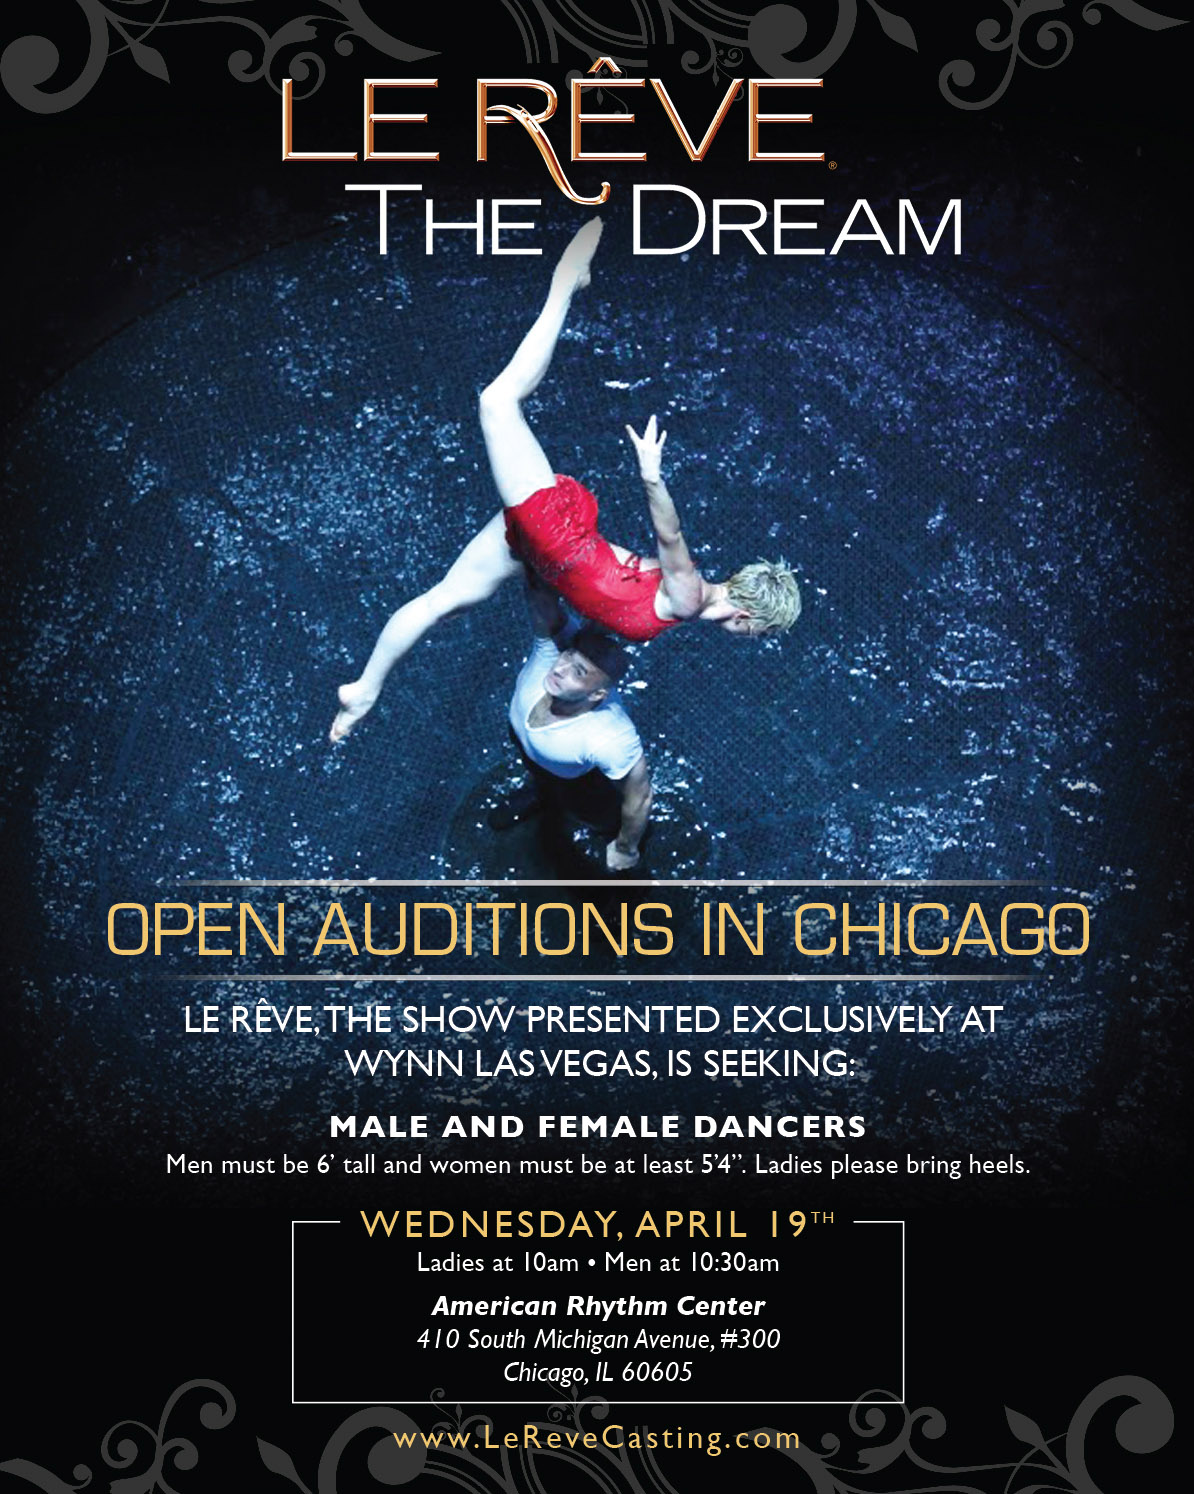 Open Dancer Auditions In Chicago For Las Vegas Show Le Reve The